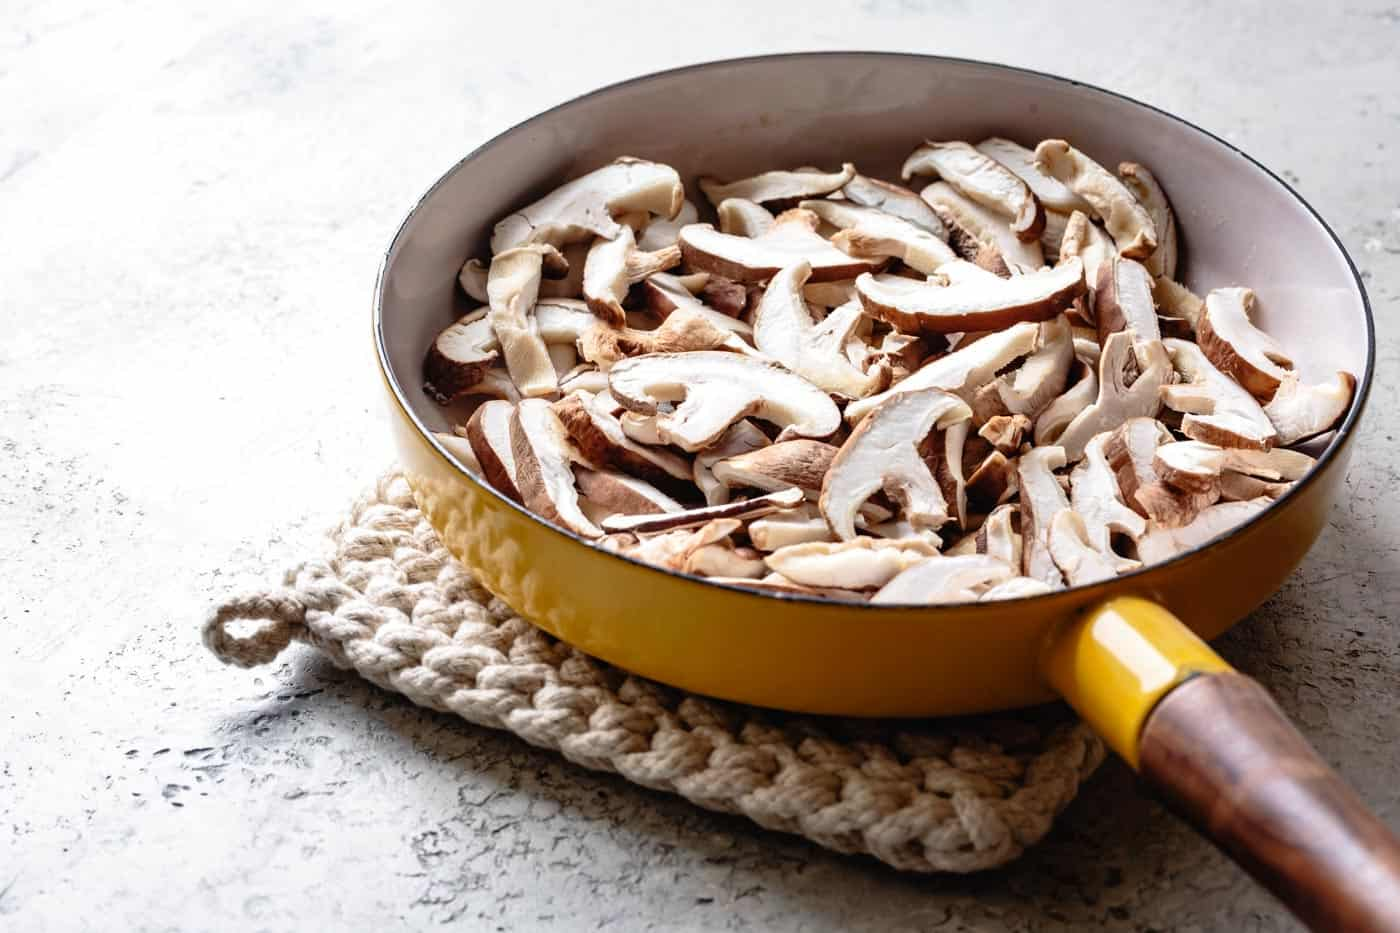 Sliced mushrooms in a pan for making vegetarian mushroom gravy (gluten-free, vegan option)